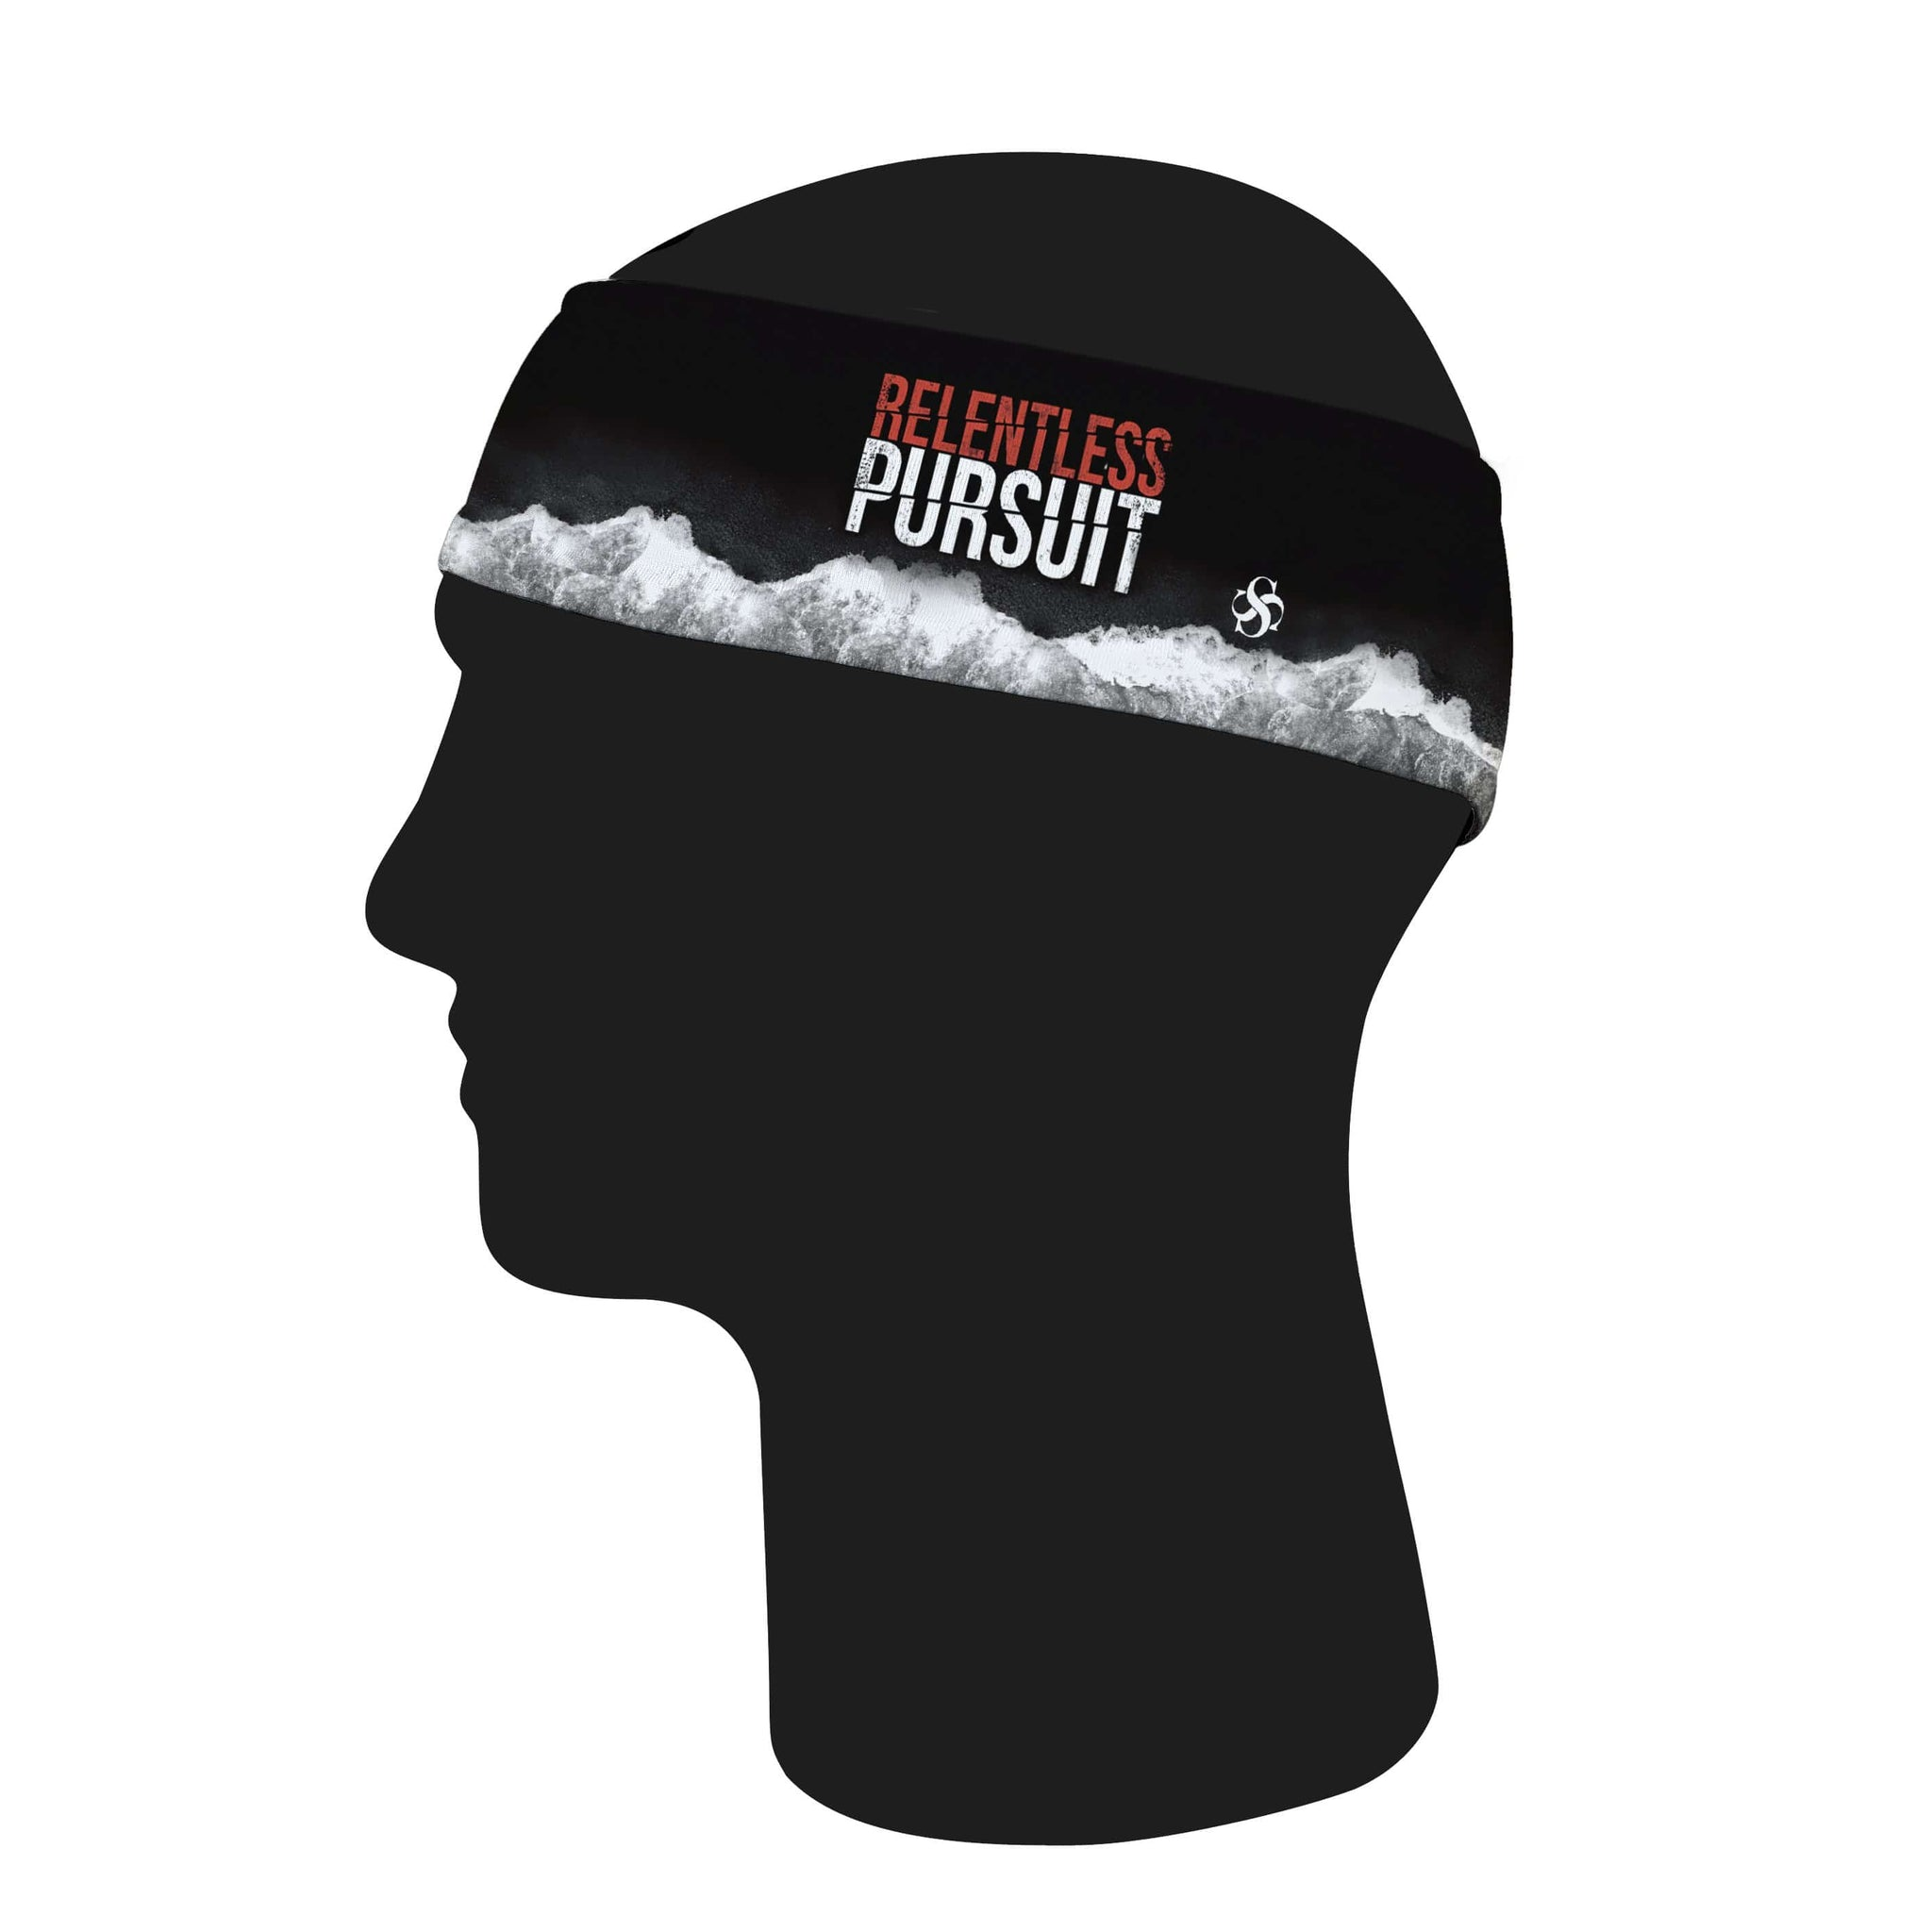 Relentless Pursuit Basic Headband